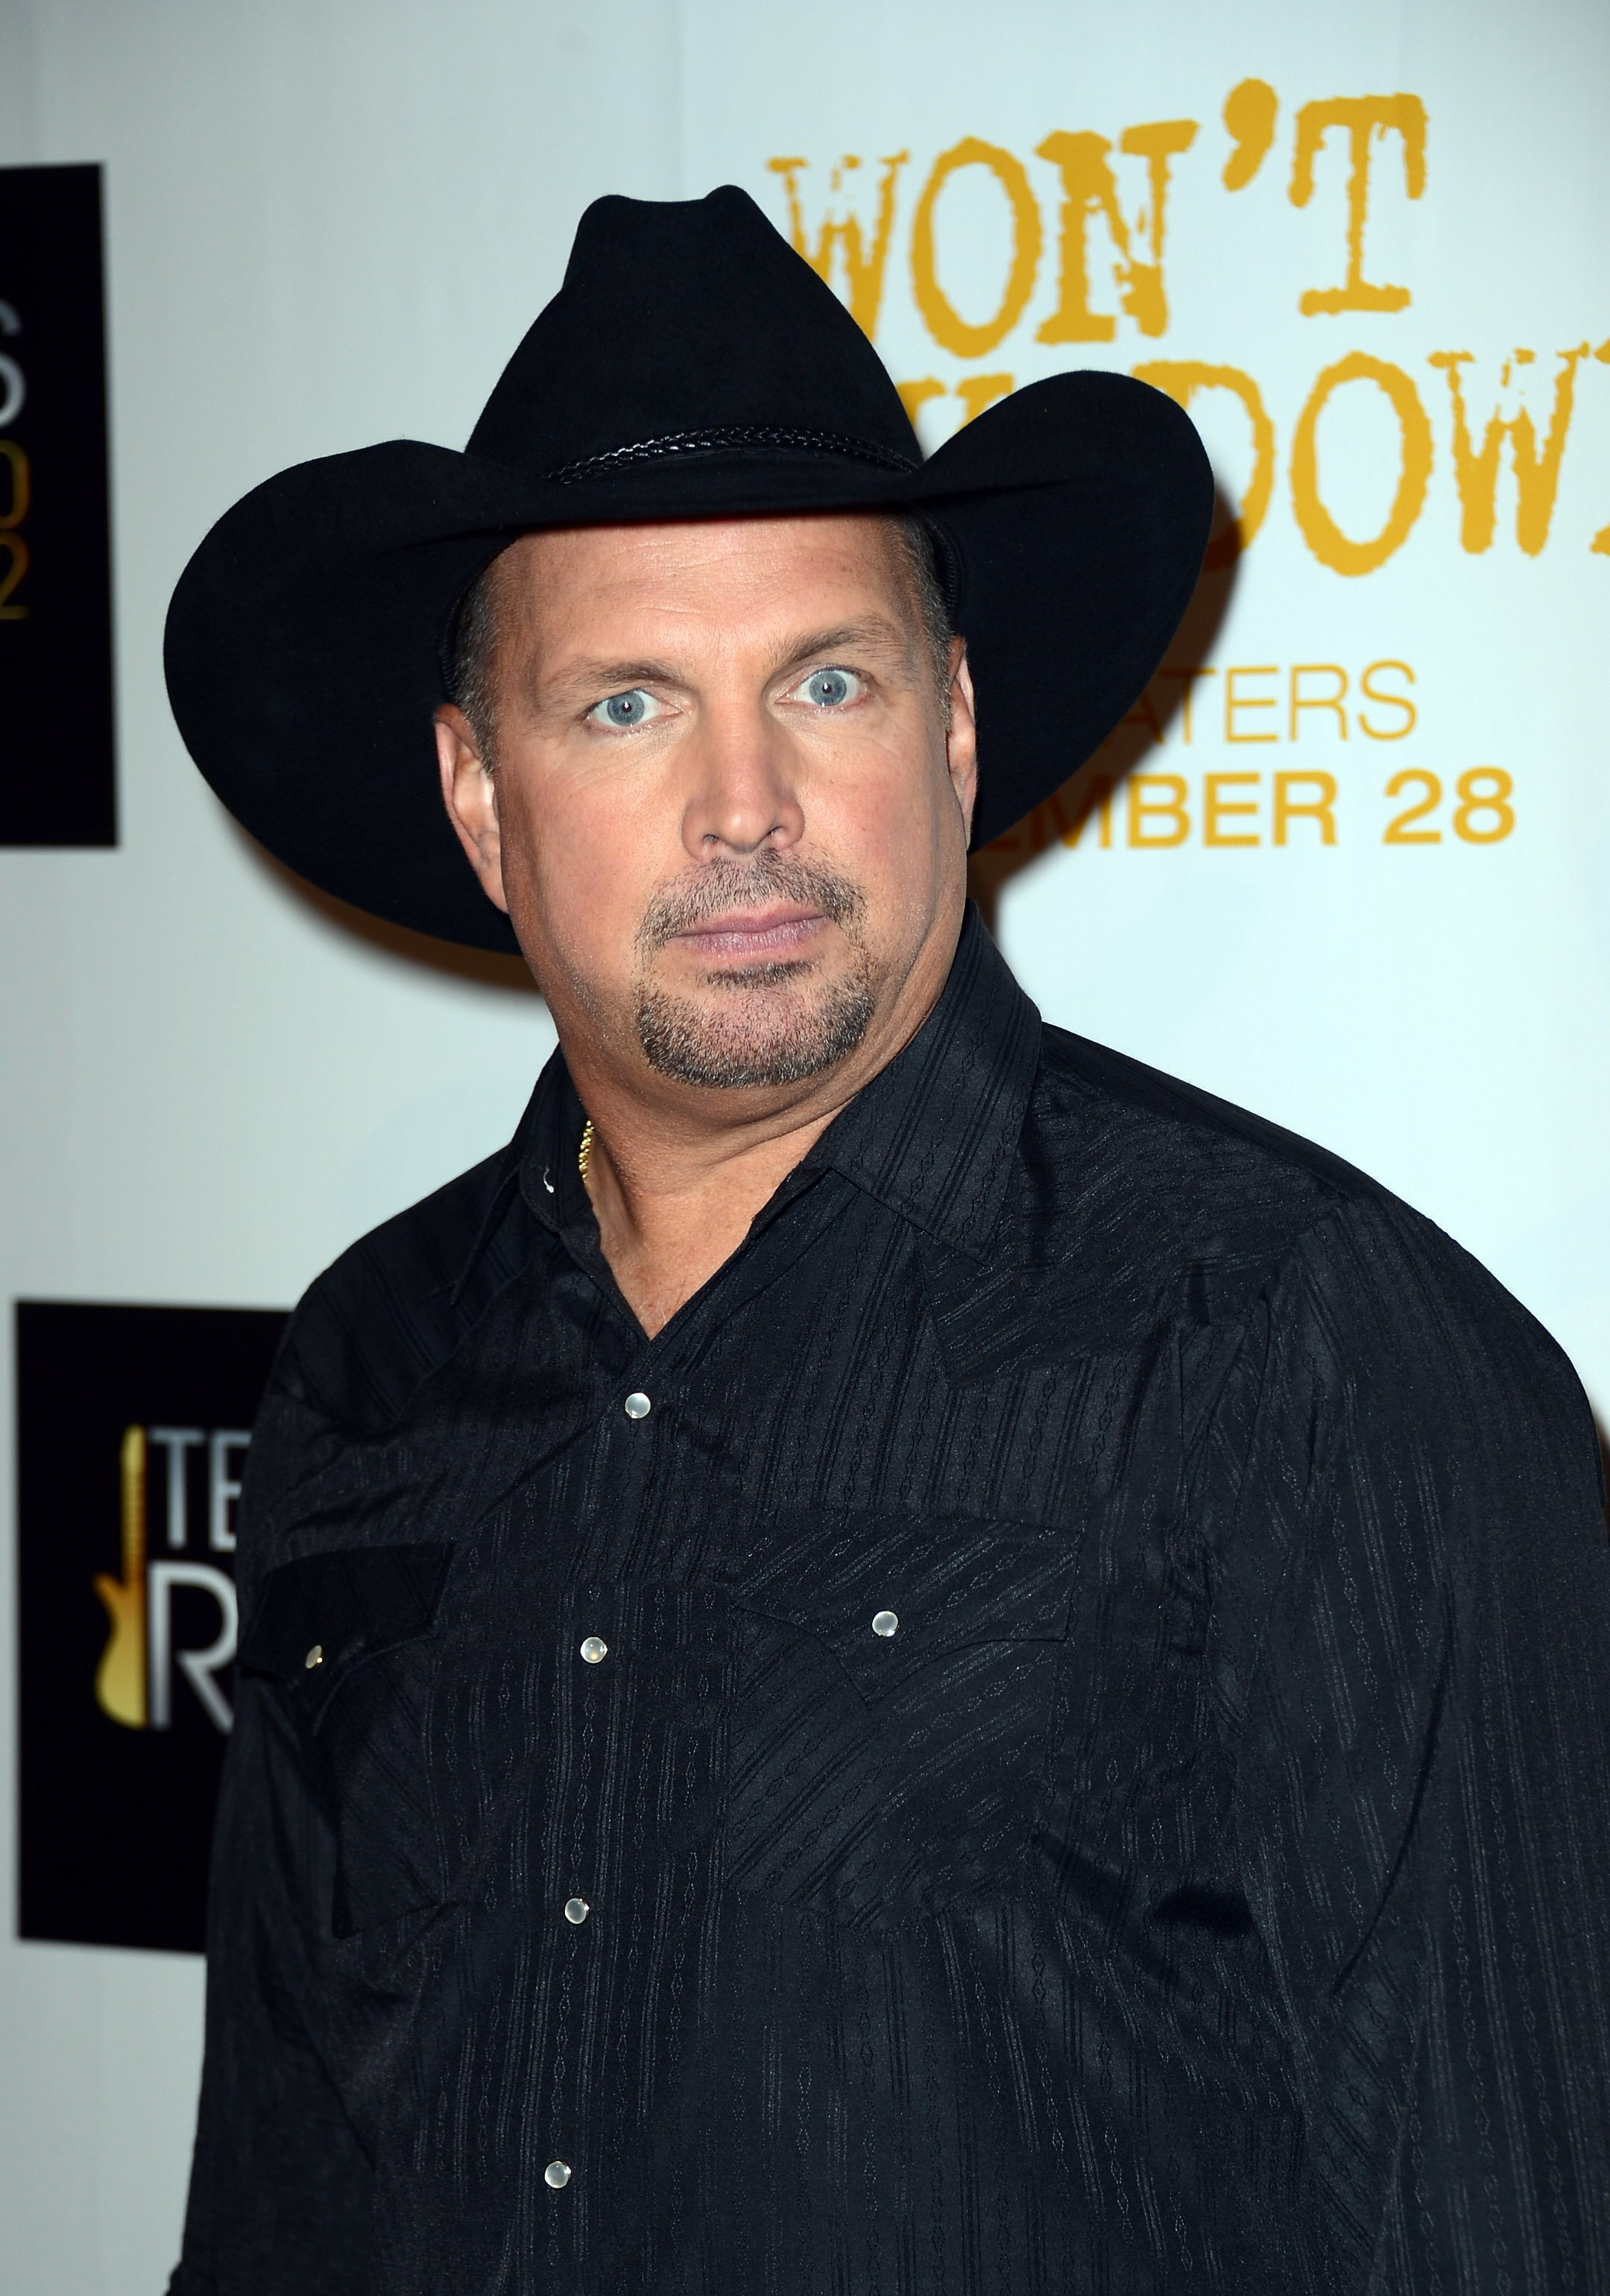 Garth Brooks attends a Live Concert Press Room event in Los Angeles, California on August 14, 2012 | Photo: Getty Images